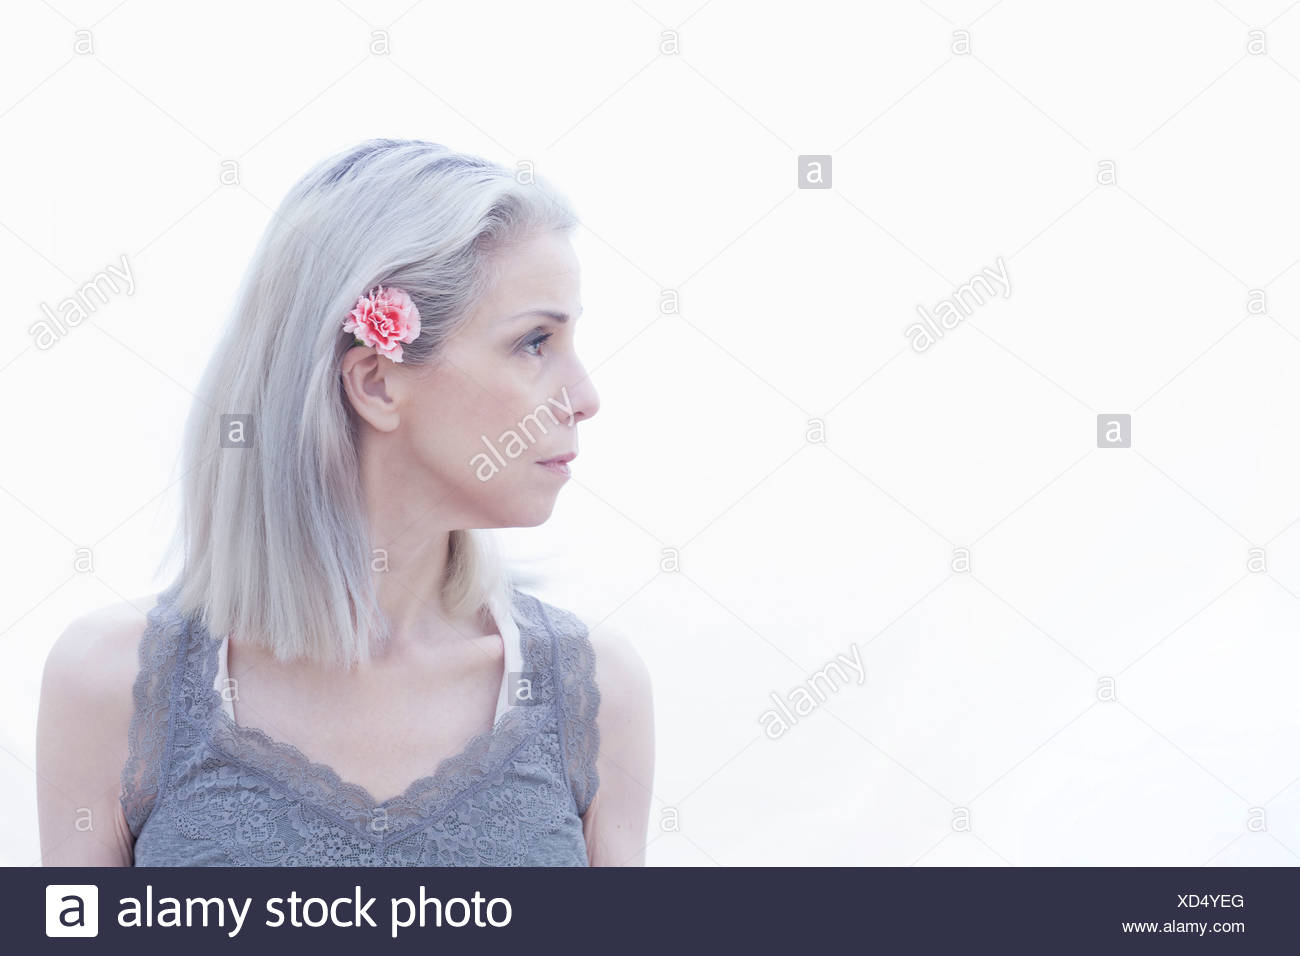 Portrait of mature woman with flower in hair - Stock Image